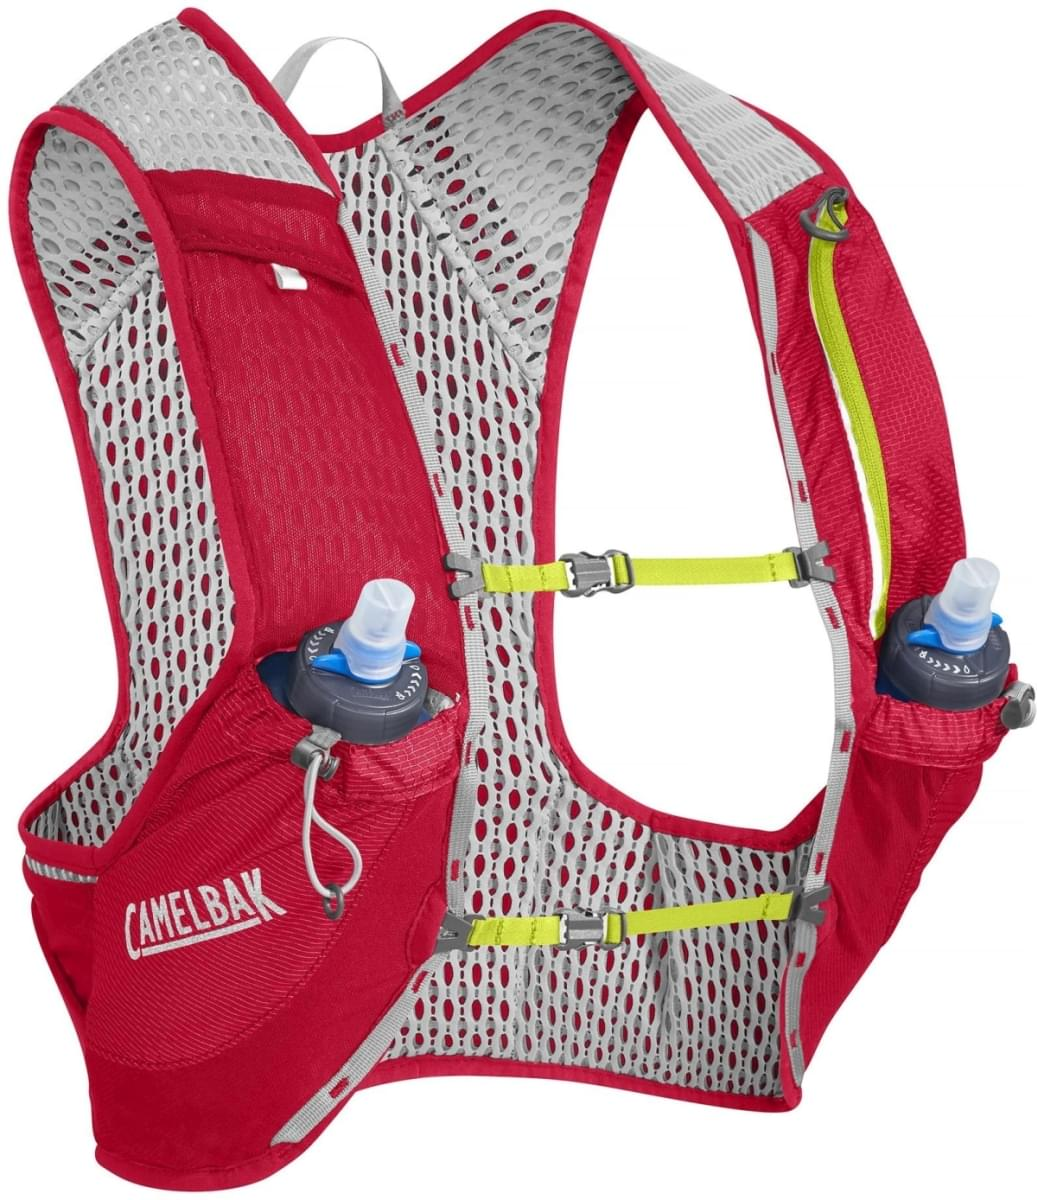 Camelbak Nano Vest - Crimson Red/Lime Punch M